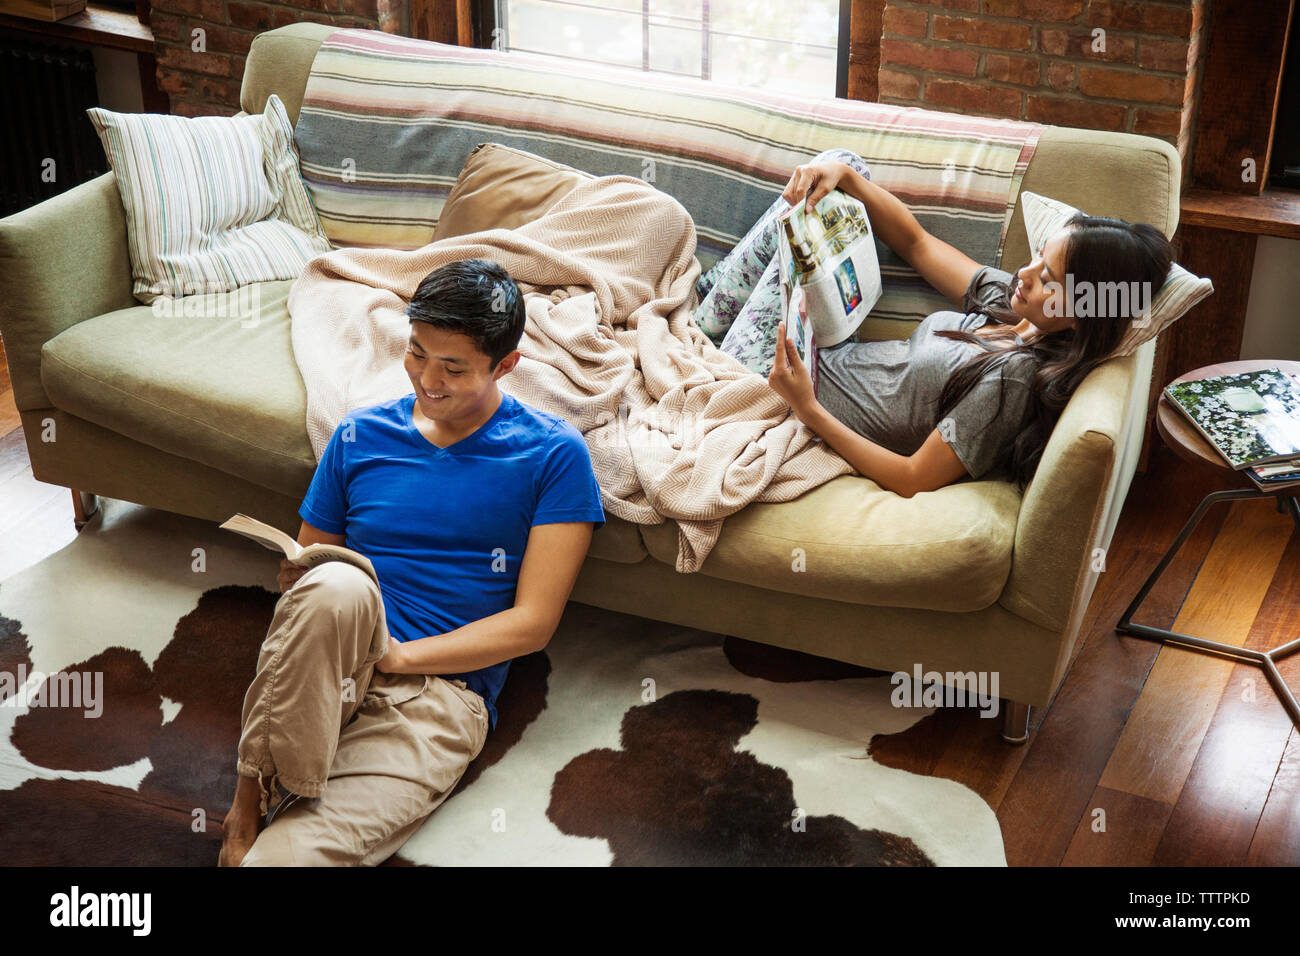 Couple reading book and magazine while relaxing at home - Stock Image